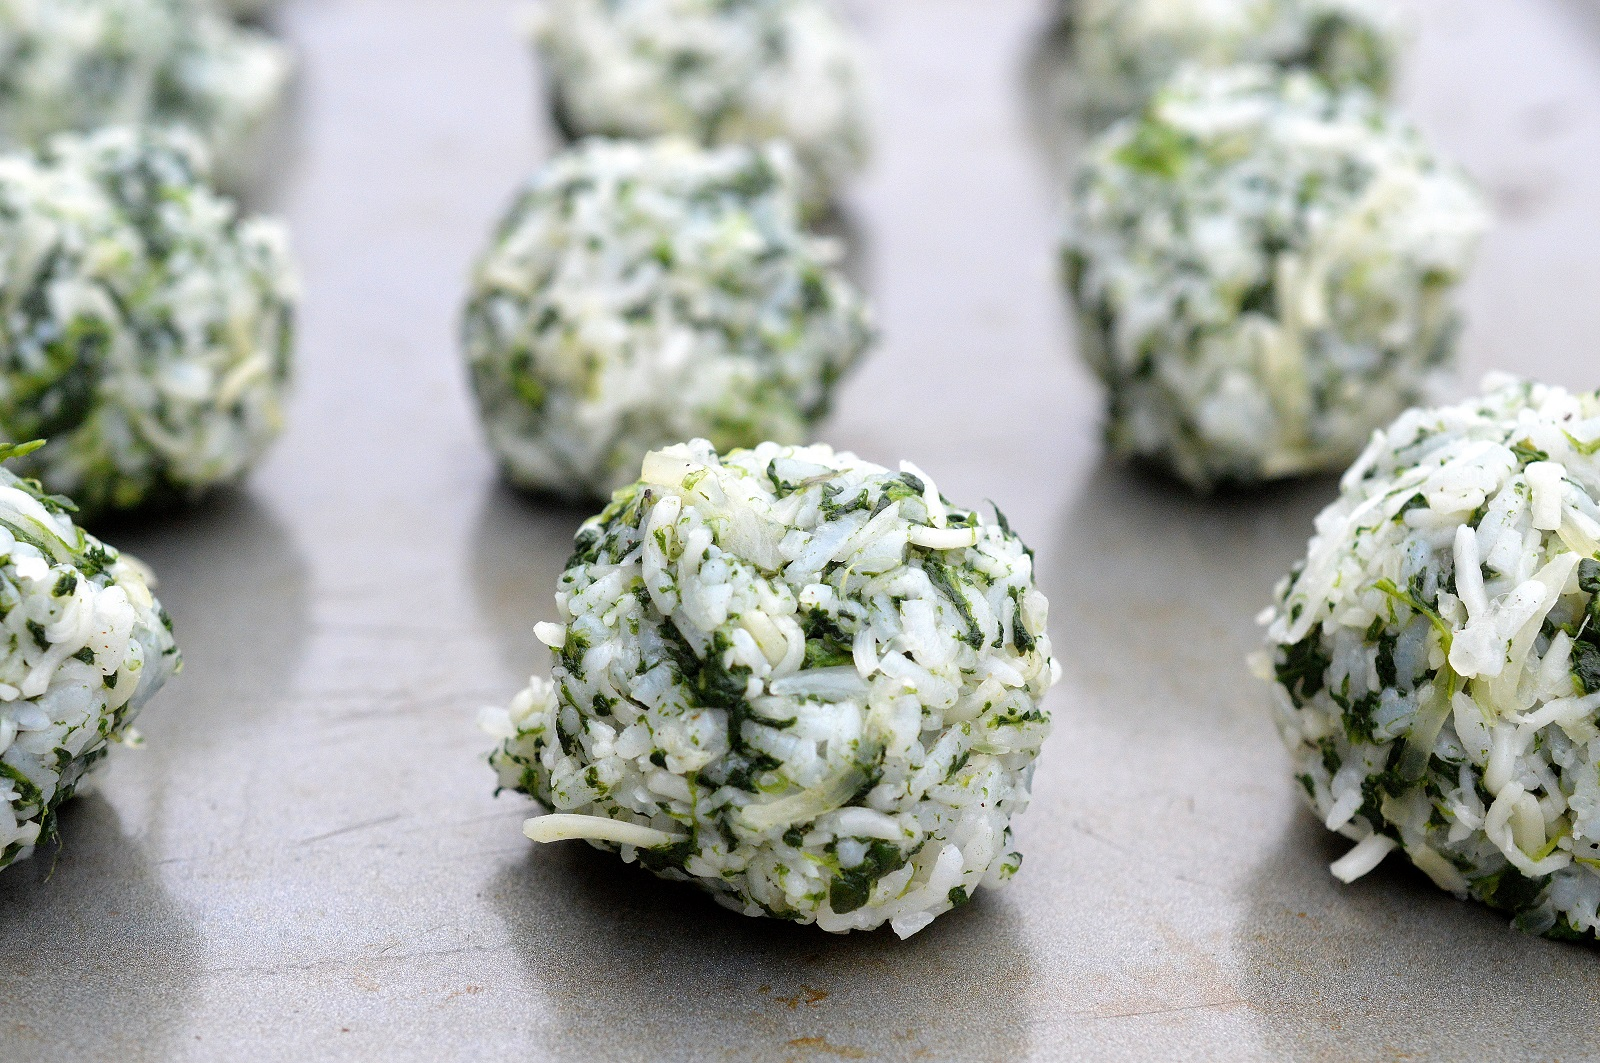 Gluten Free Rice & Spinach Balls, a delicious alternative to the traditional!